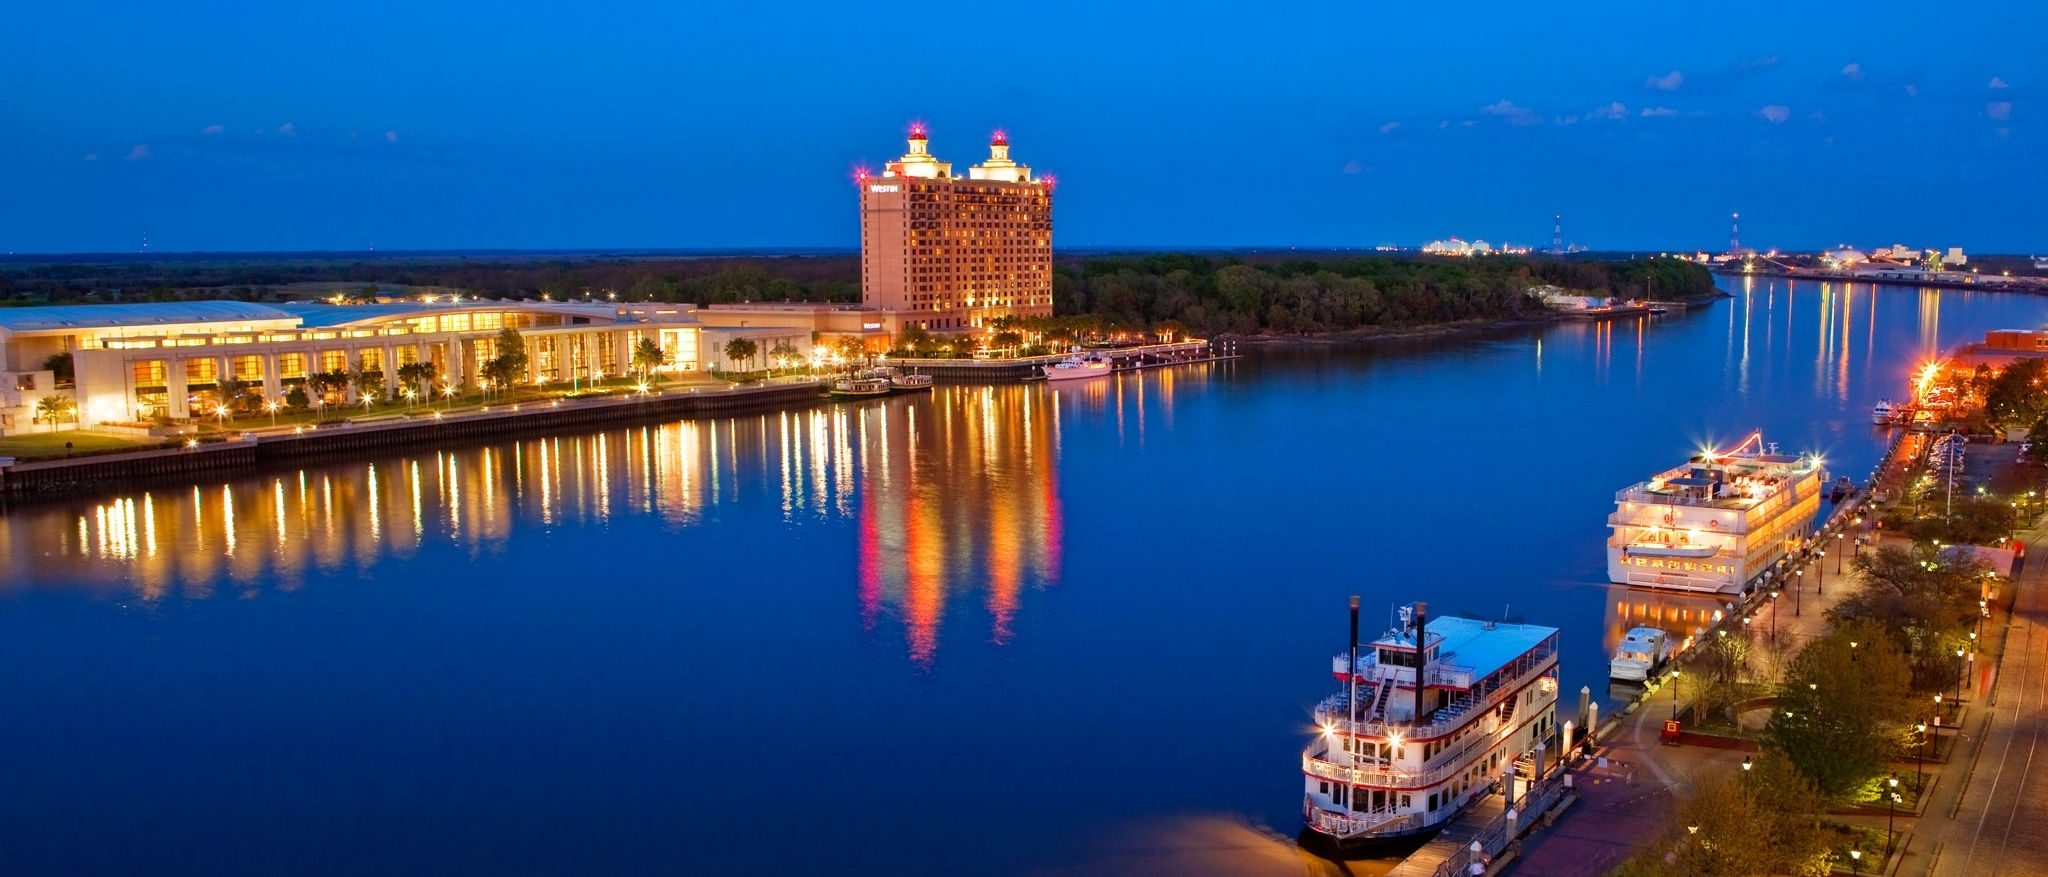 The Westin Savannah Harbor Golf Resort & Spa - Resort from Savannah River